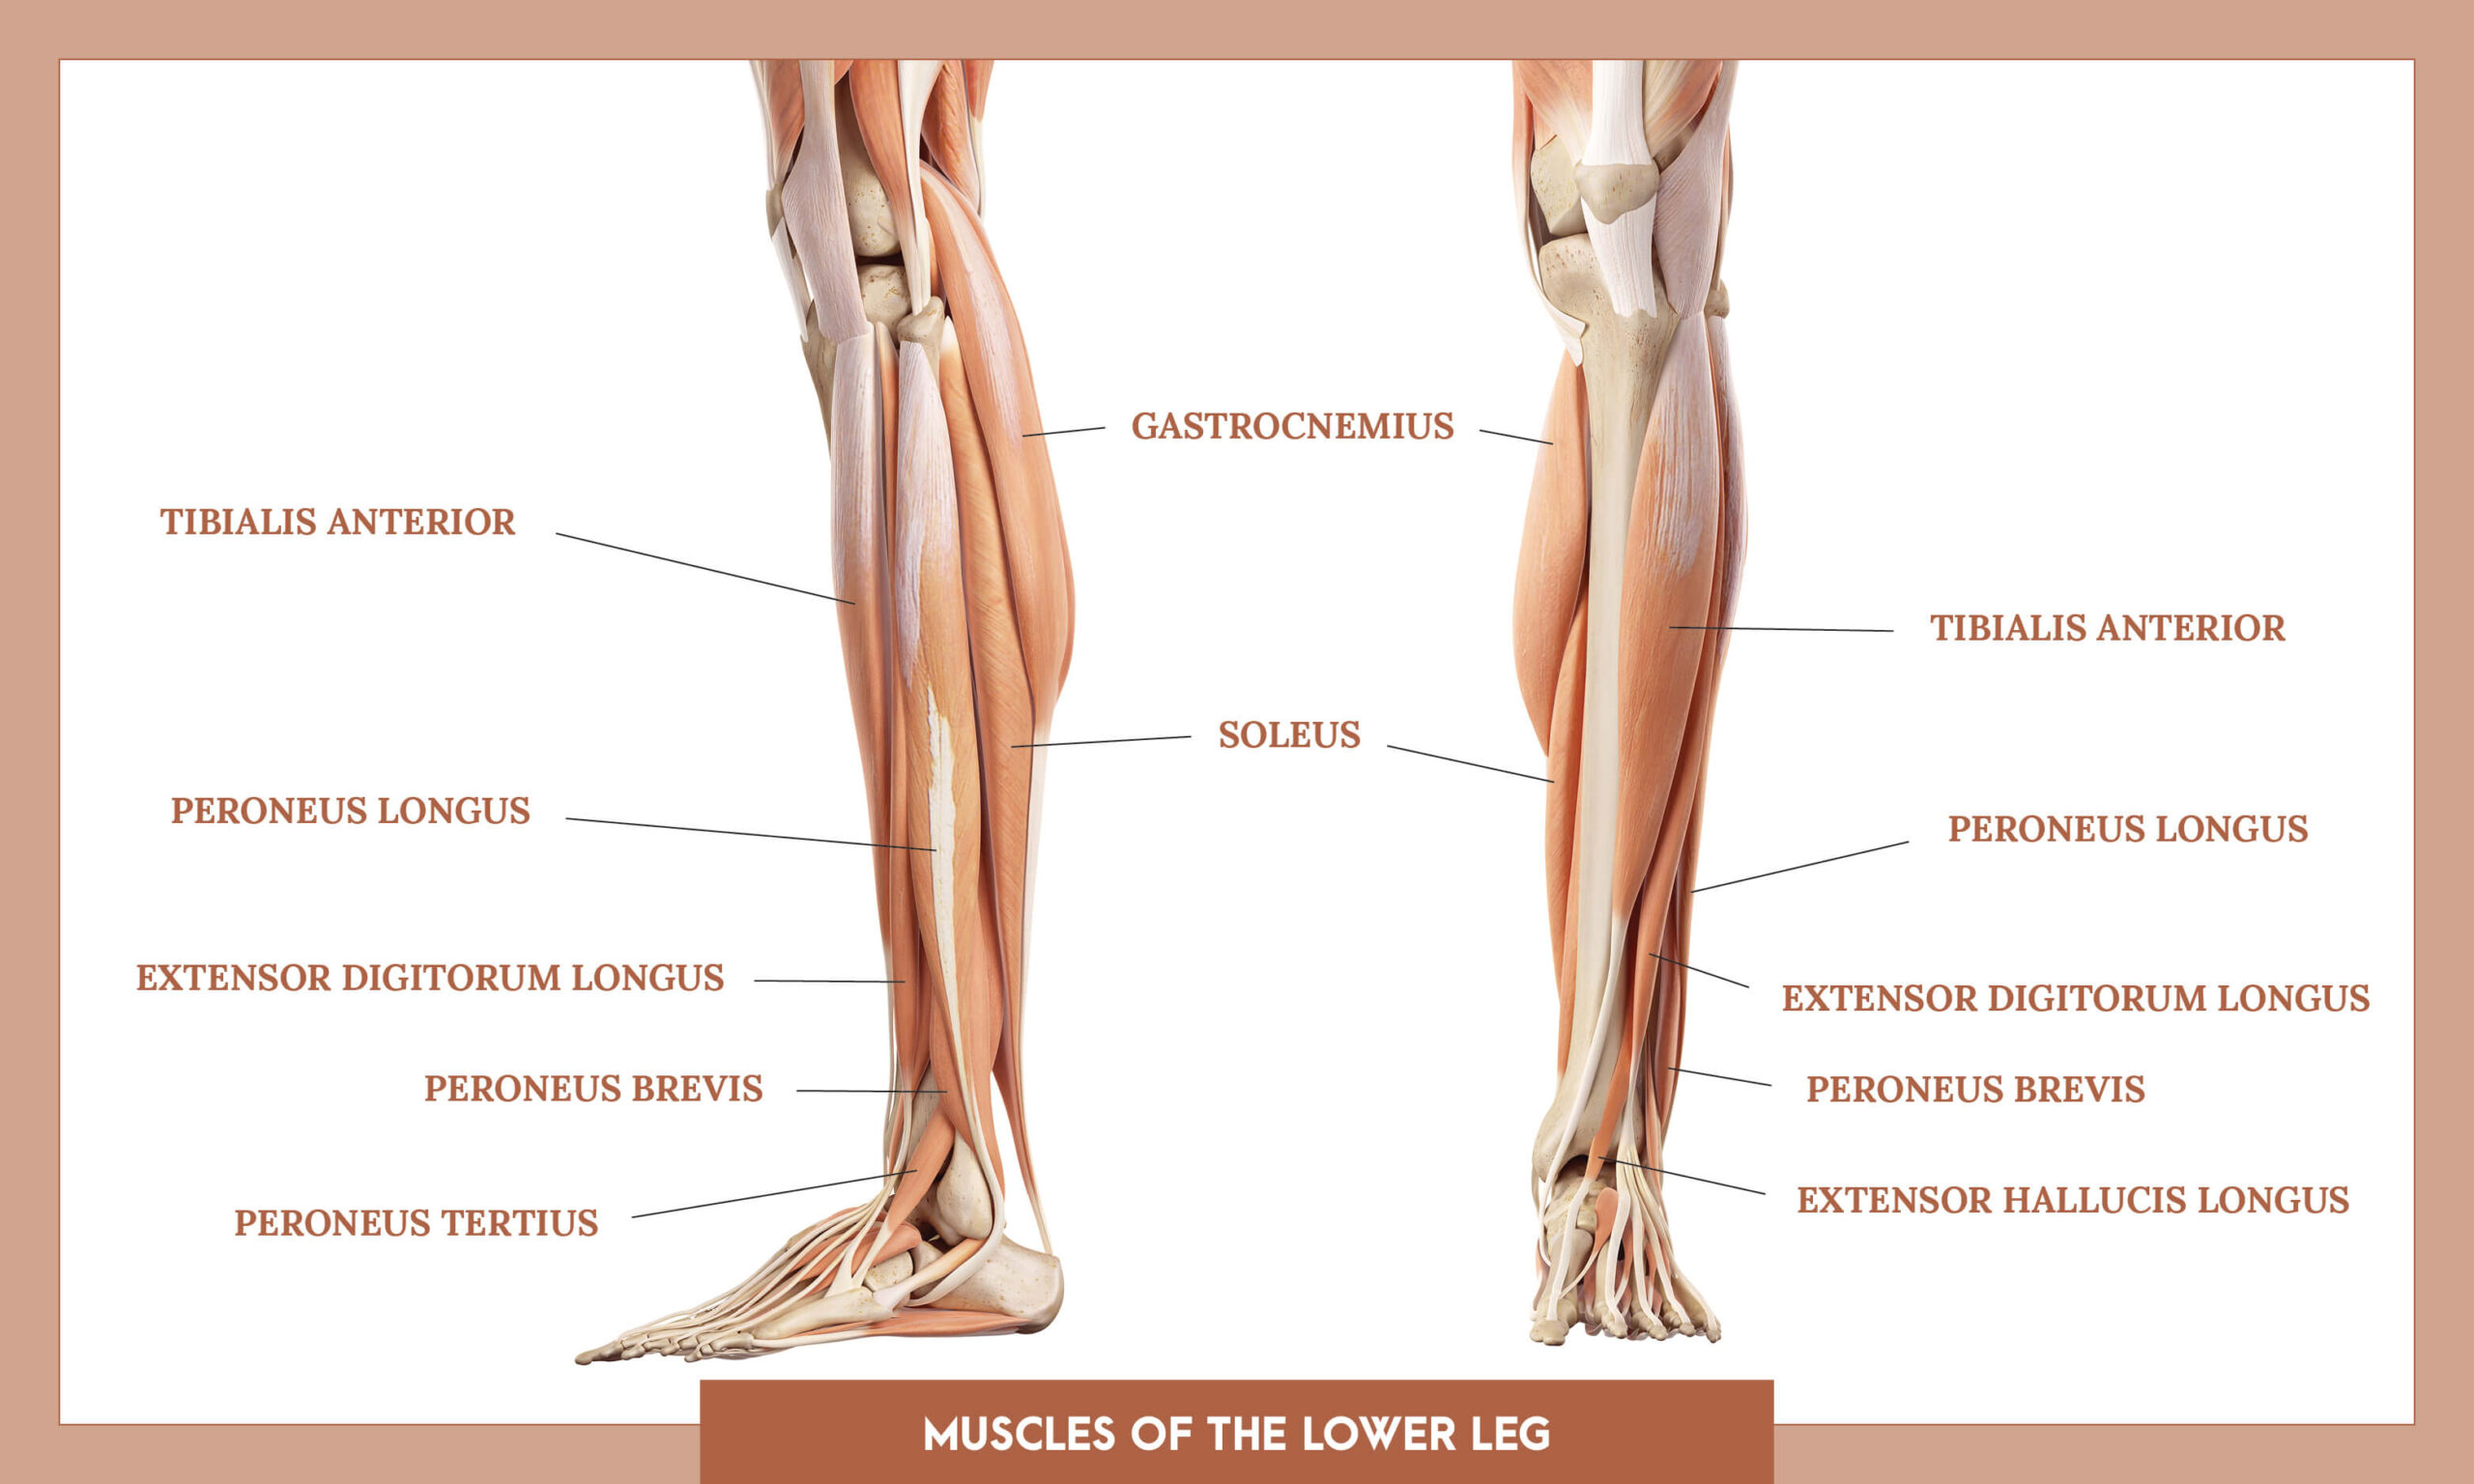 Muscles of thee Lower Limb - muscles of the lower leg overview